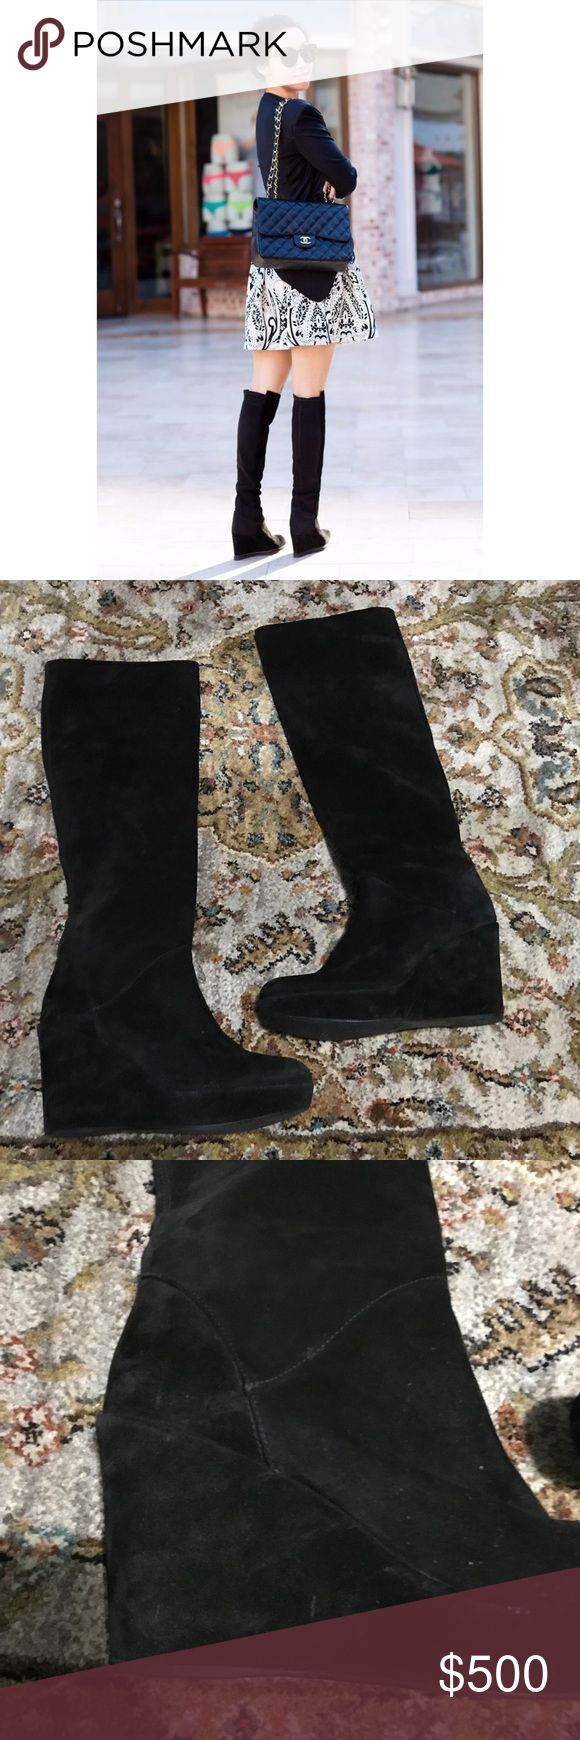 Stuart Weitzman Black Suede Wedge Boots Great condition with very minor marks on Suede on inner leg. Pull on style. Comfortable wedge. Stuart Weitzman Shoes